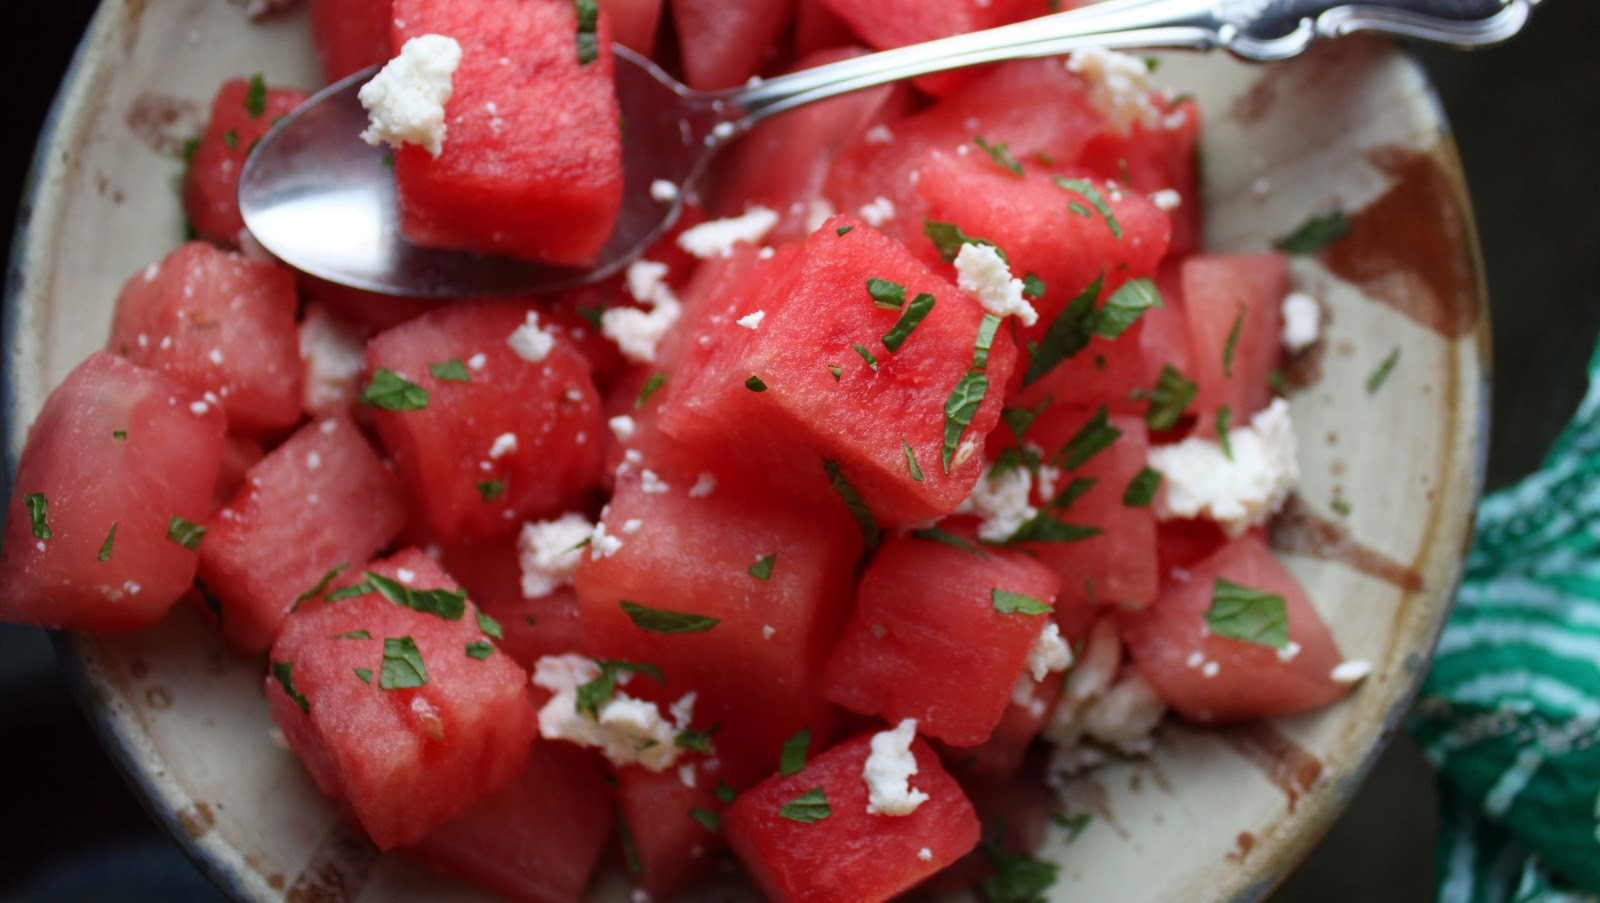 Fat and Happy Blog: Watermelon Salad with Mint and Queso Fresco